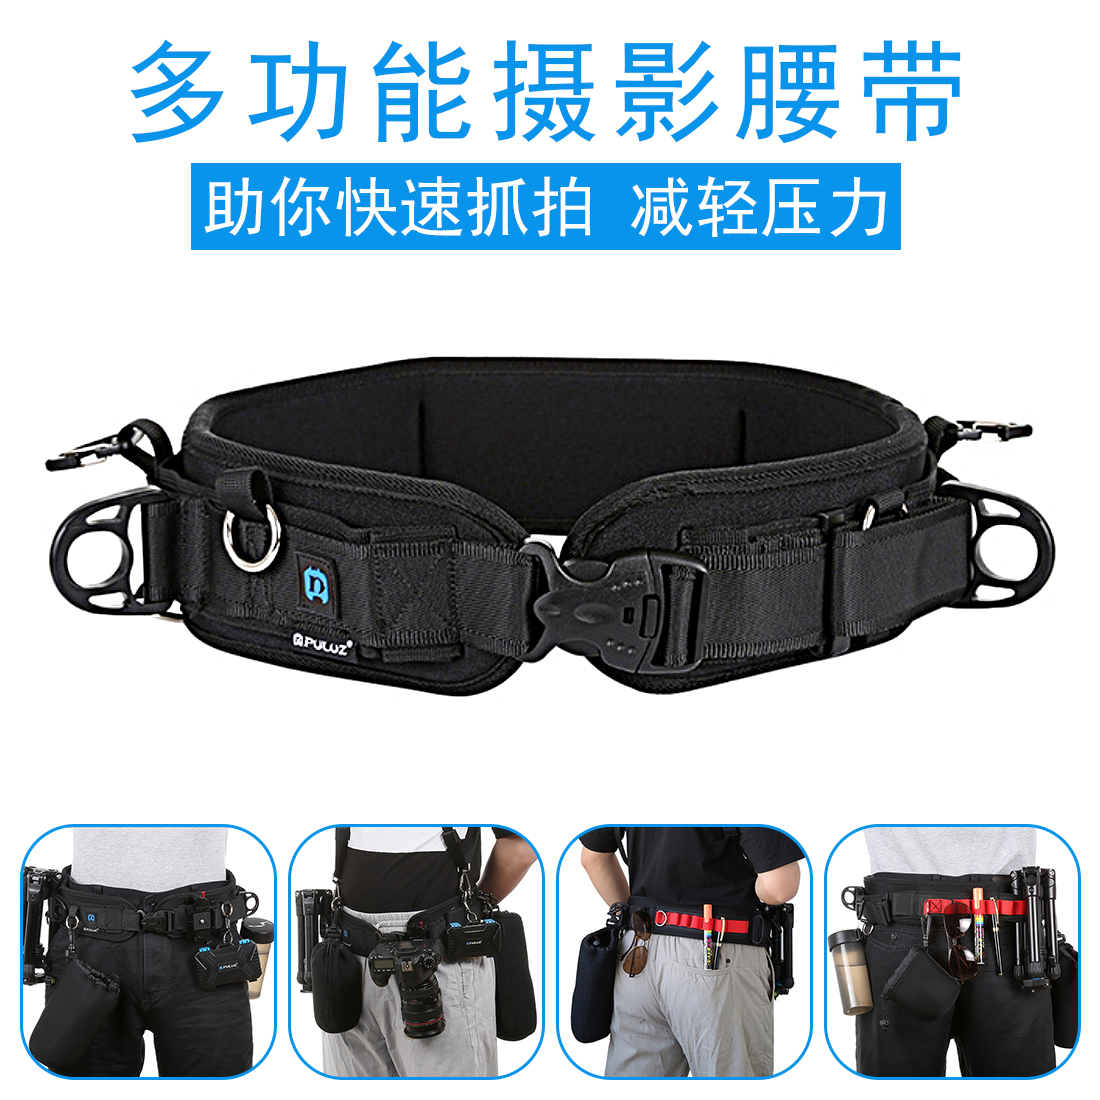 Multifunctional photography belt mountaineering street shooting waist bag micro SLR camera fixed quick hanging belt professional accessories for men and women